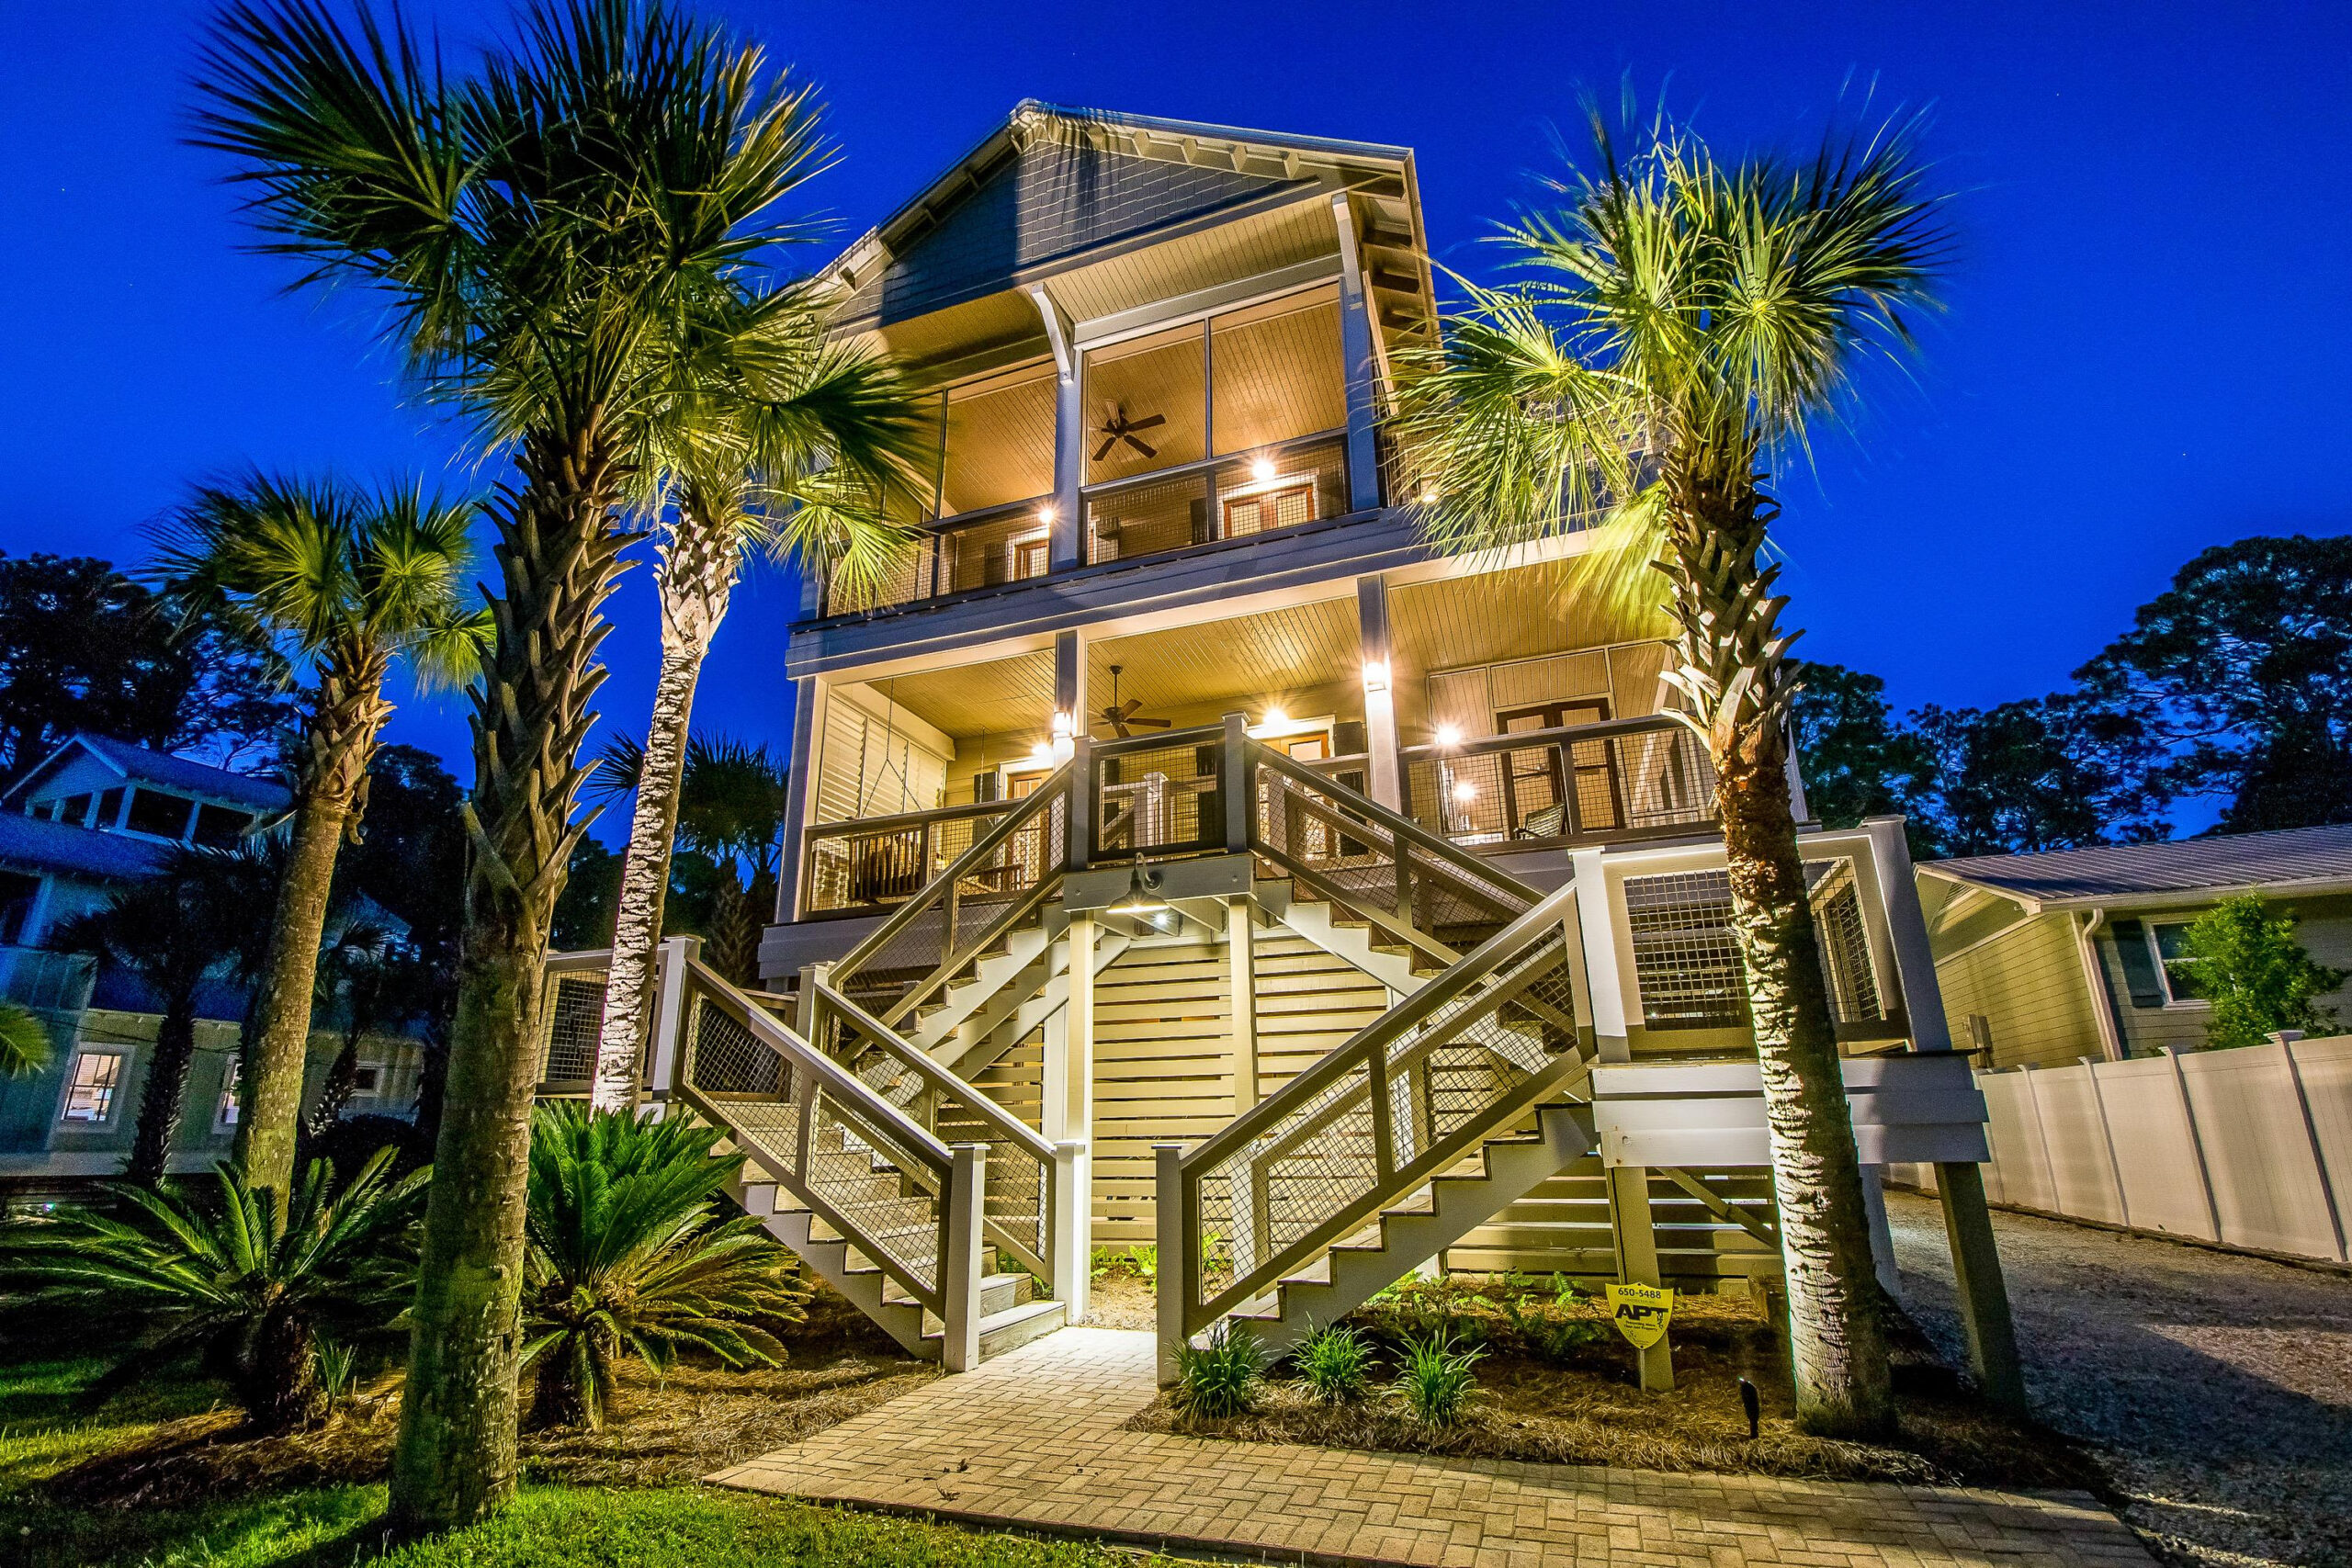 Southern Grounds 3 Bedroom Vacation Home Rental Santa